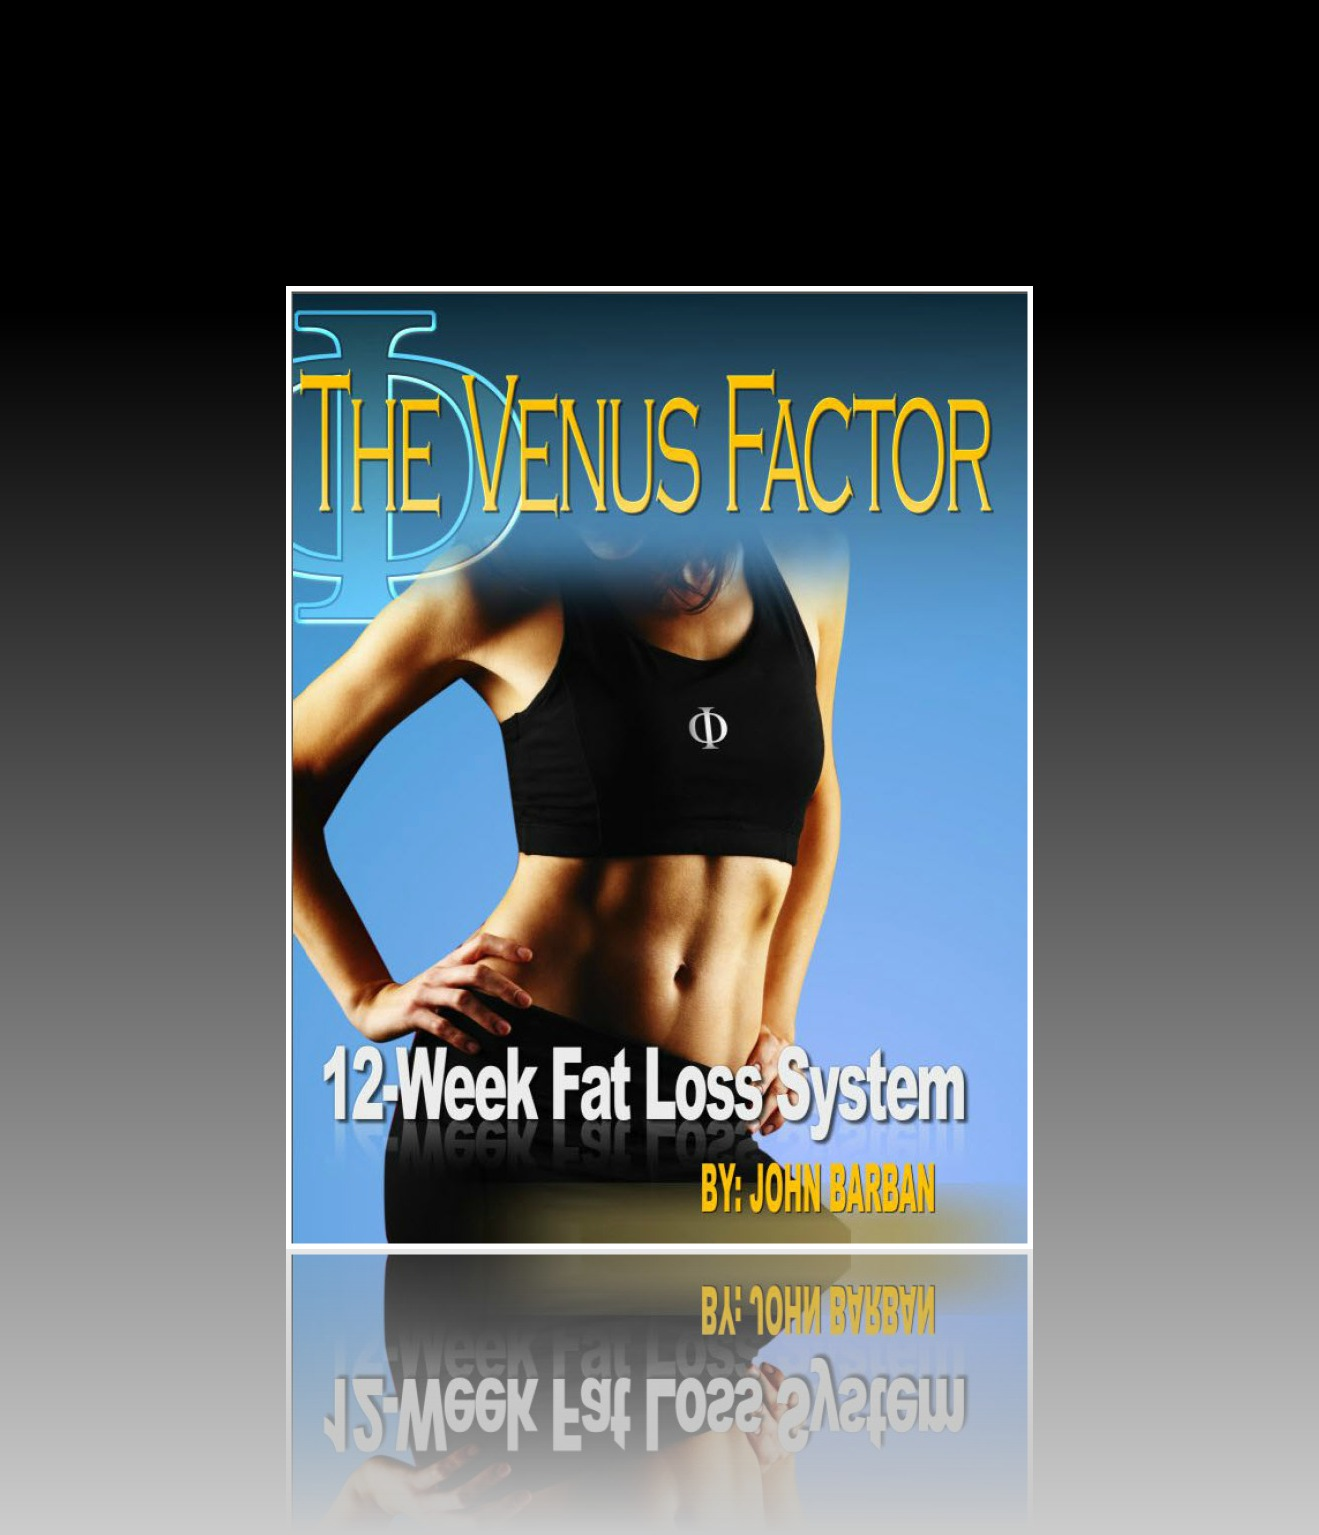 The secret to the Venus Factor is the magic of the support community along with hormone research and the experiences of those who succeeded and sustained their fitness level.